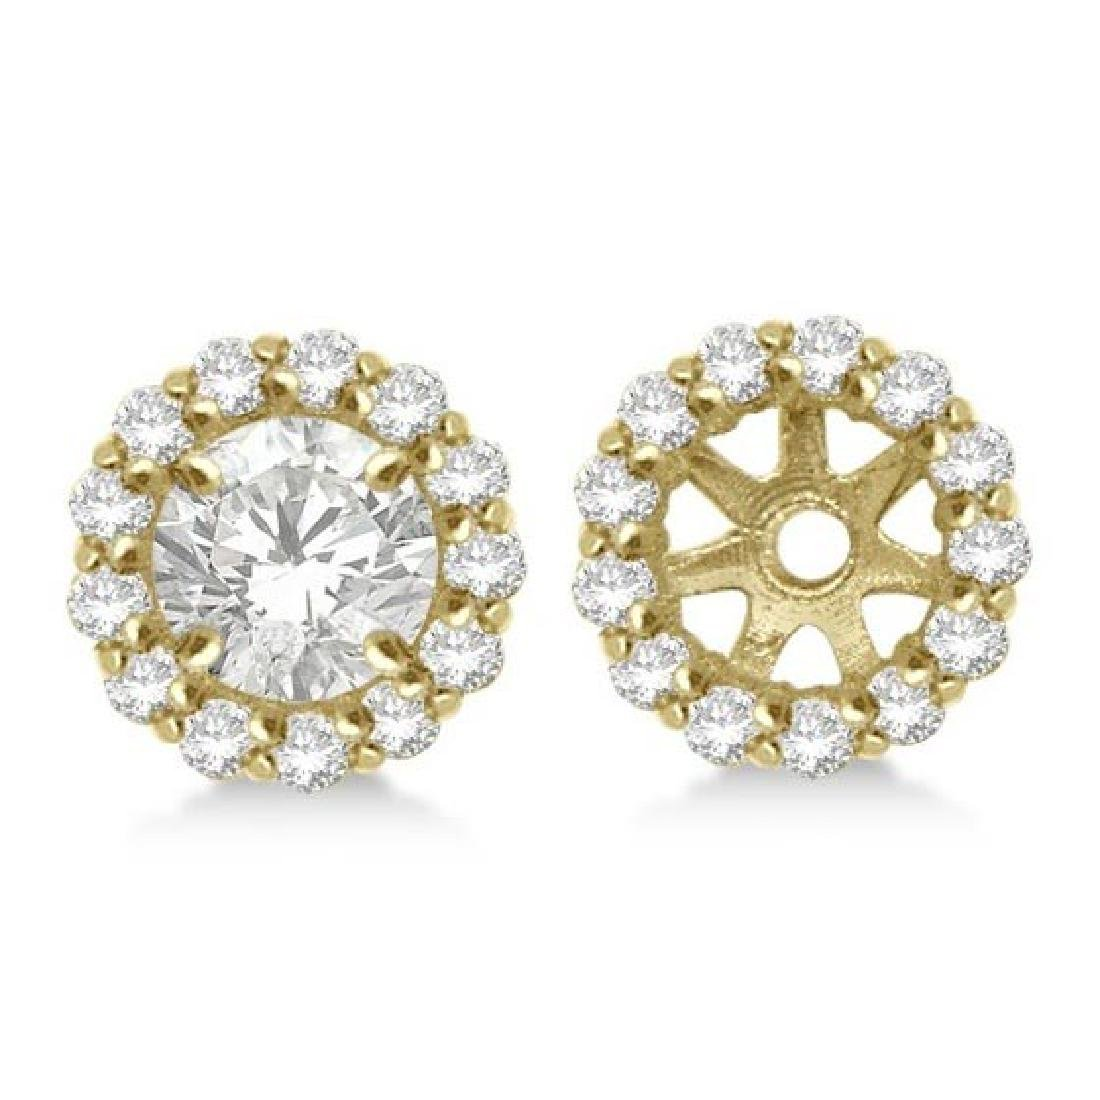 Round Diamond Earring Jackets for 5mm Studs 14K Yellow